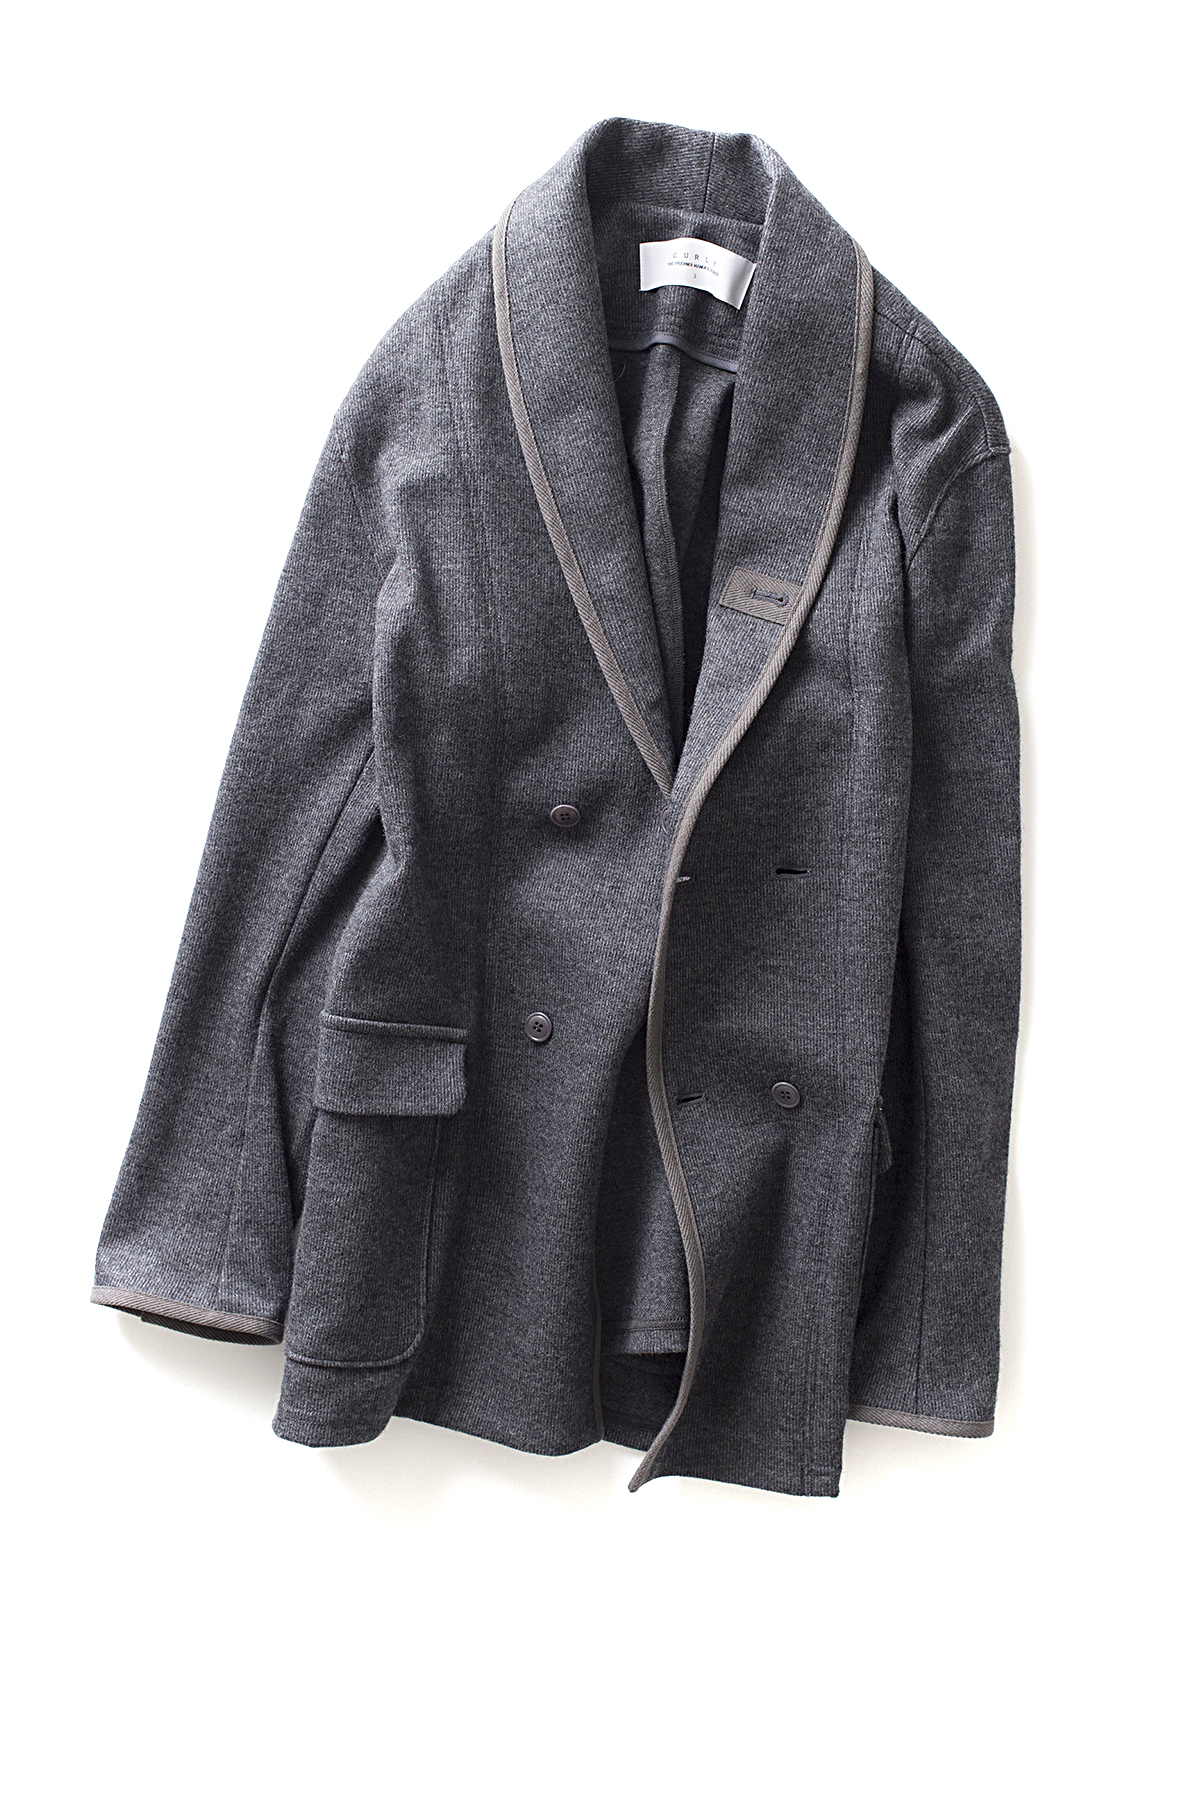 Curly : Split Shawl Jacket (Grey)